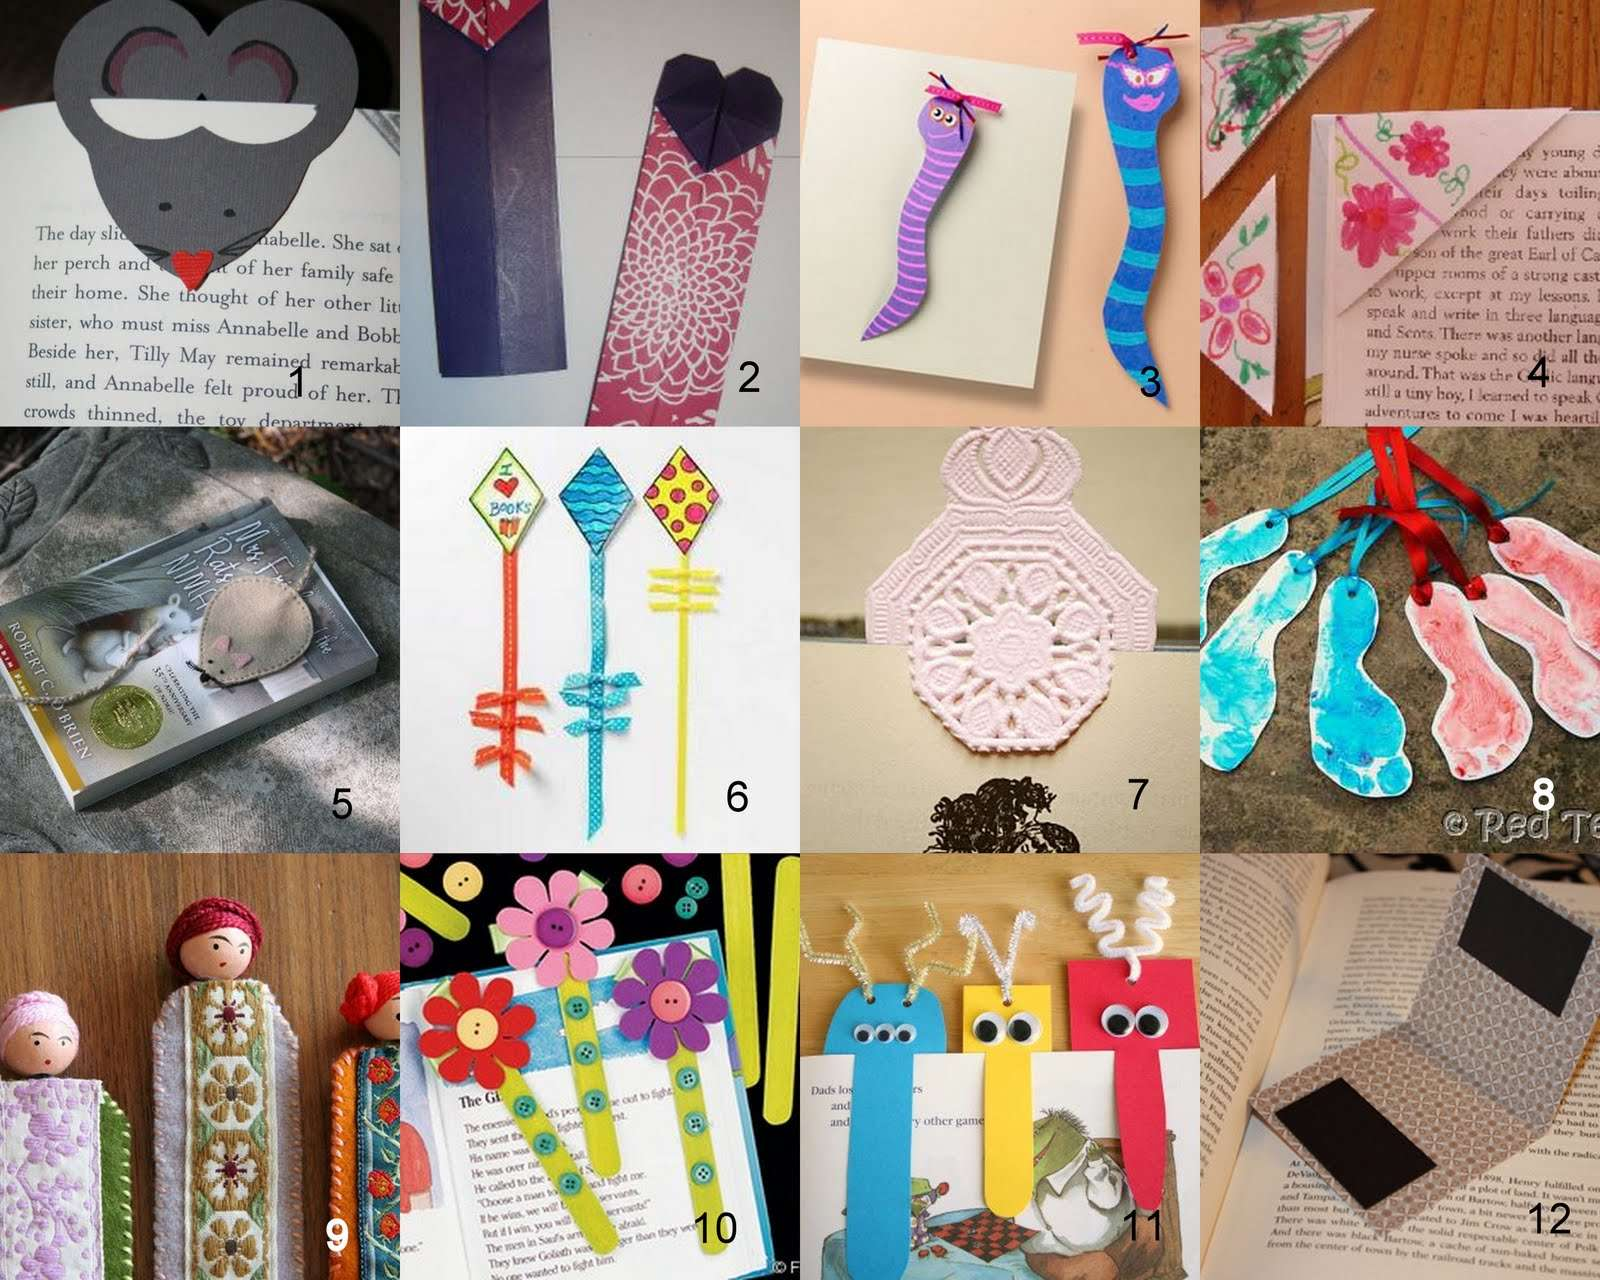 Having Fun Home Bookmark Craft Ideas